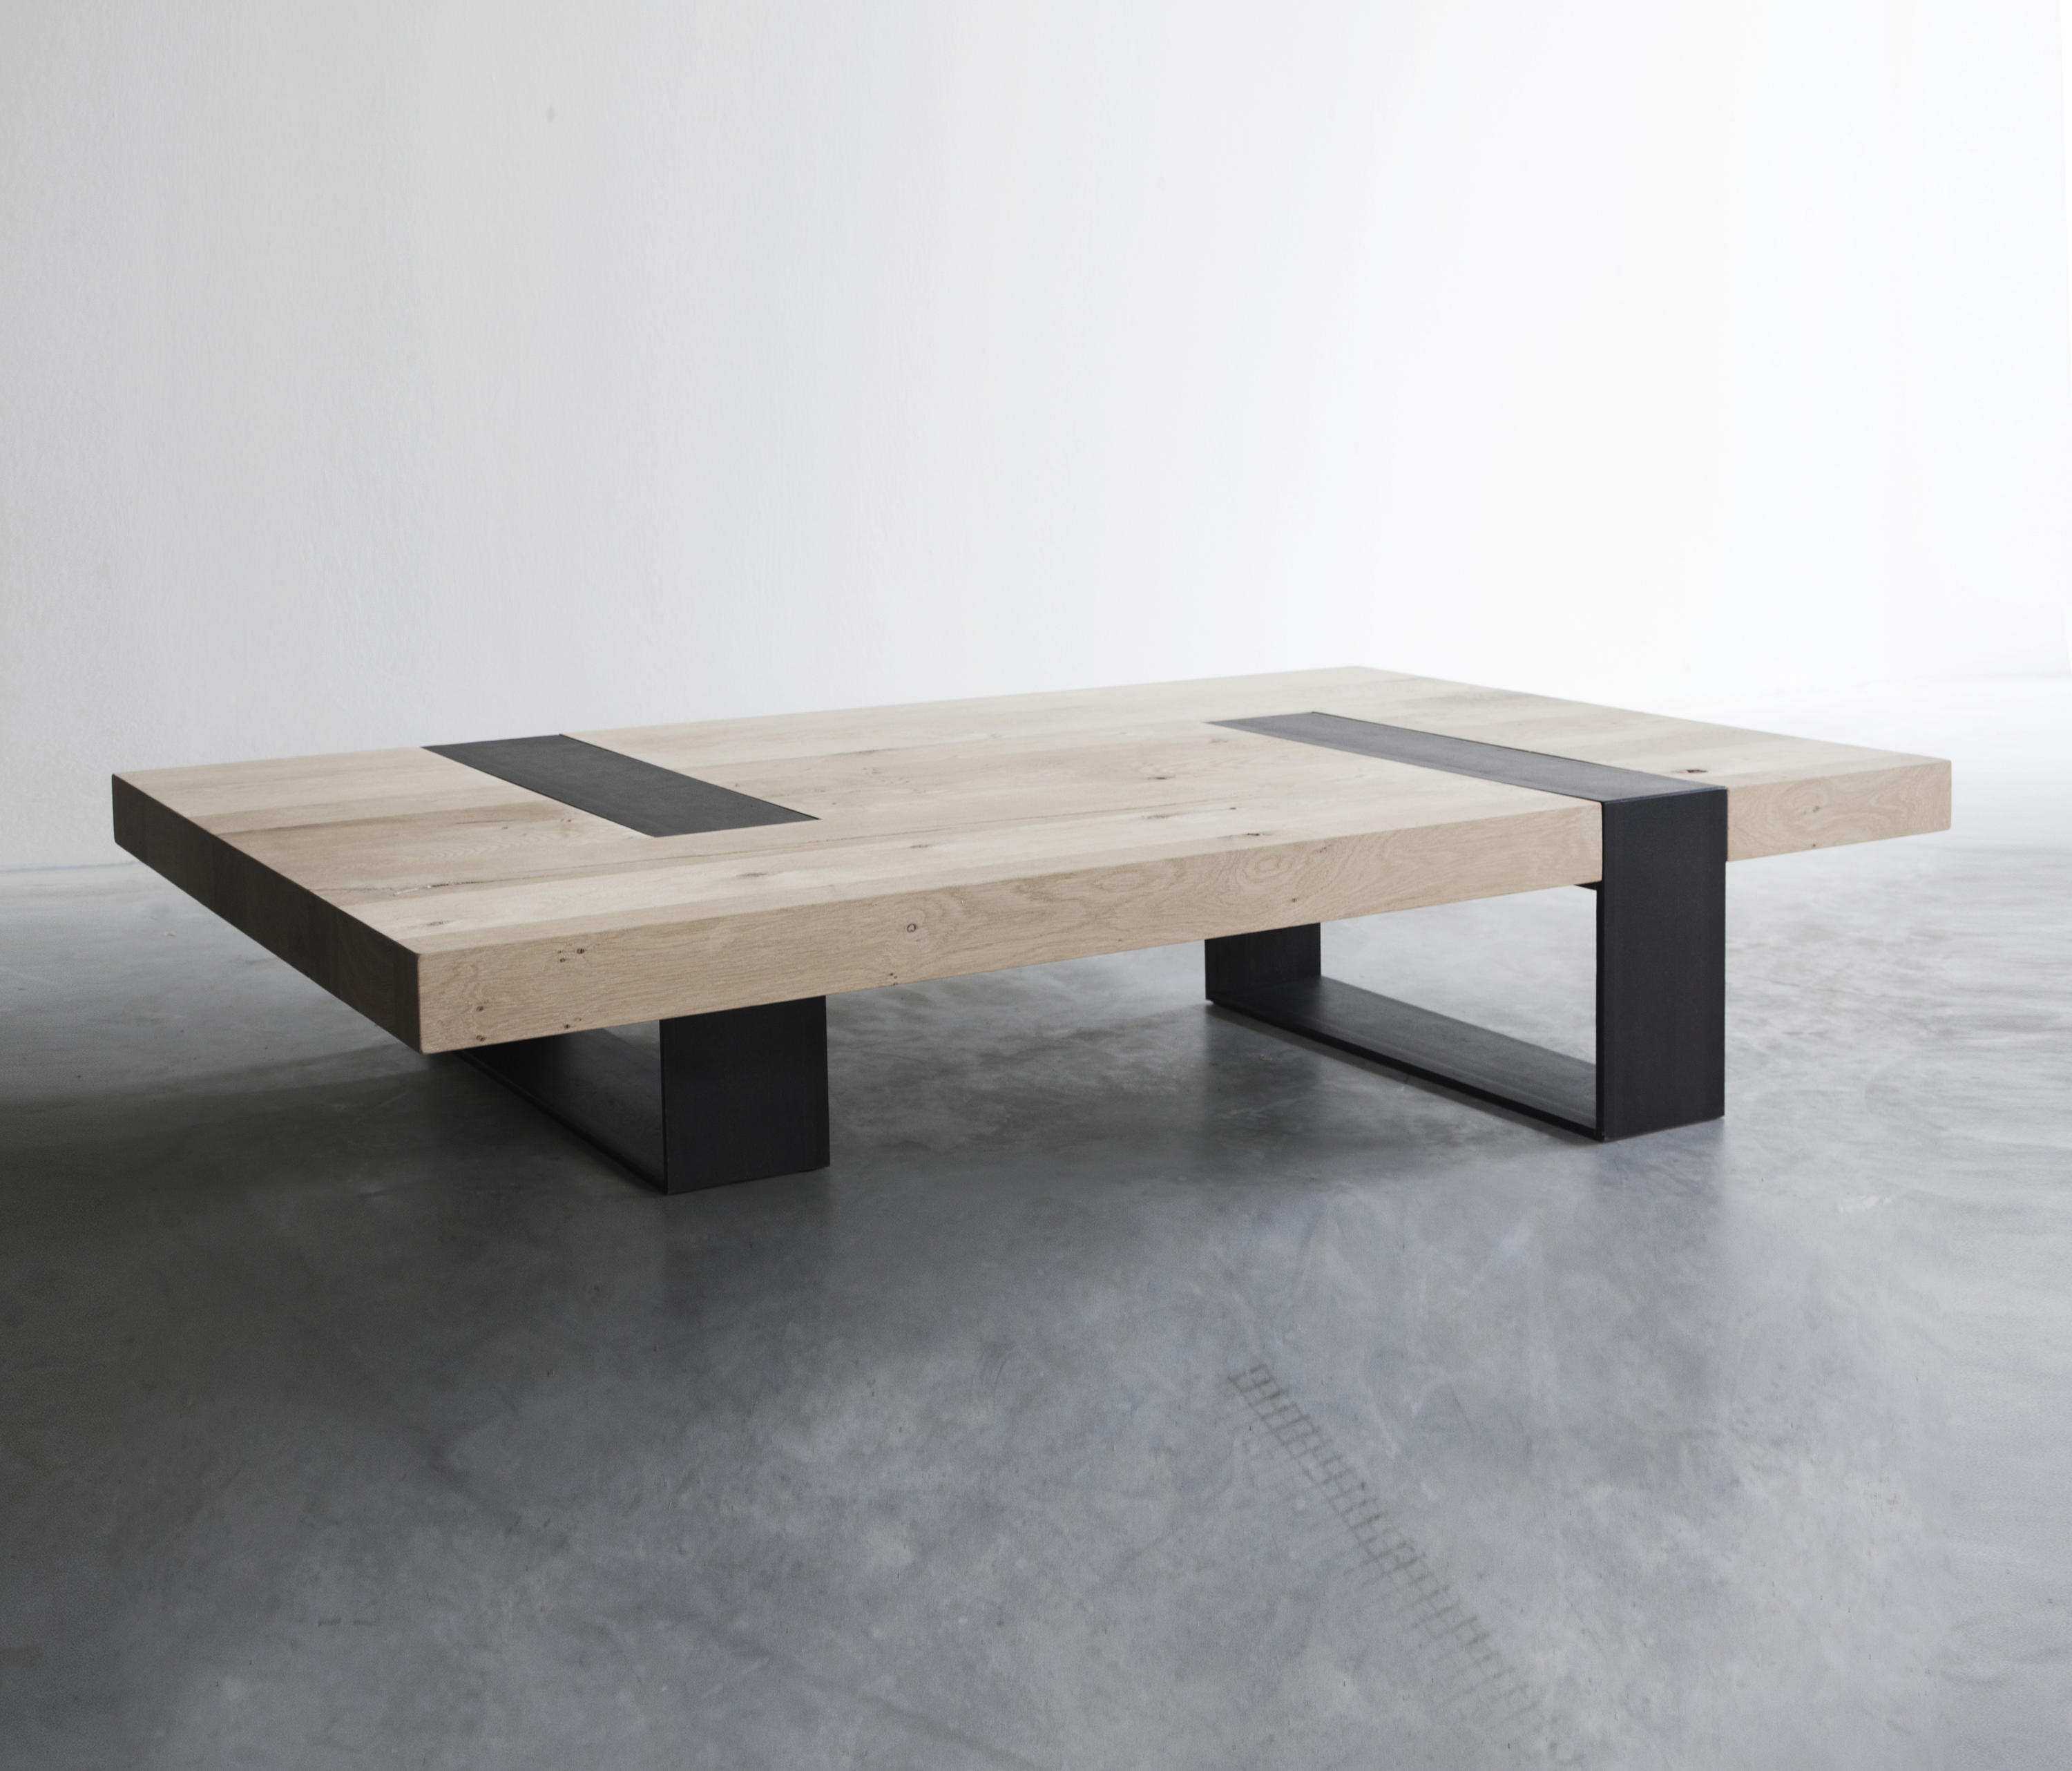 Clip coffee table lounge tables from van rossum architonic clip coffee table by van rossum lounge tables geotapseo Gallery